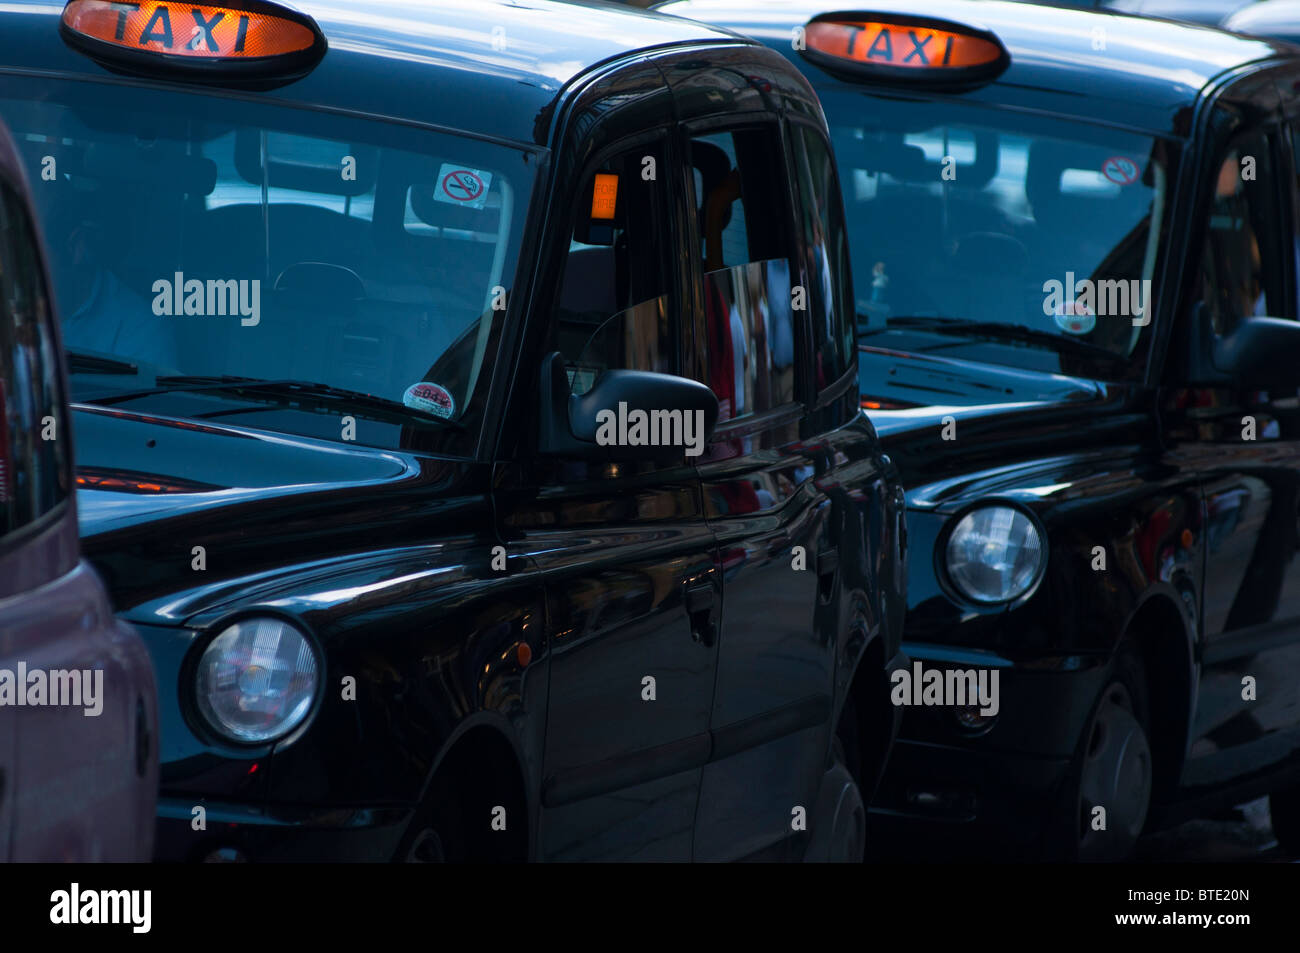 Black taxi cabs queued up on Brompton Rd, Knightsbridge, London - Stock Image